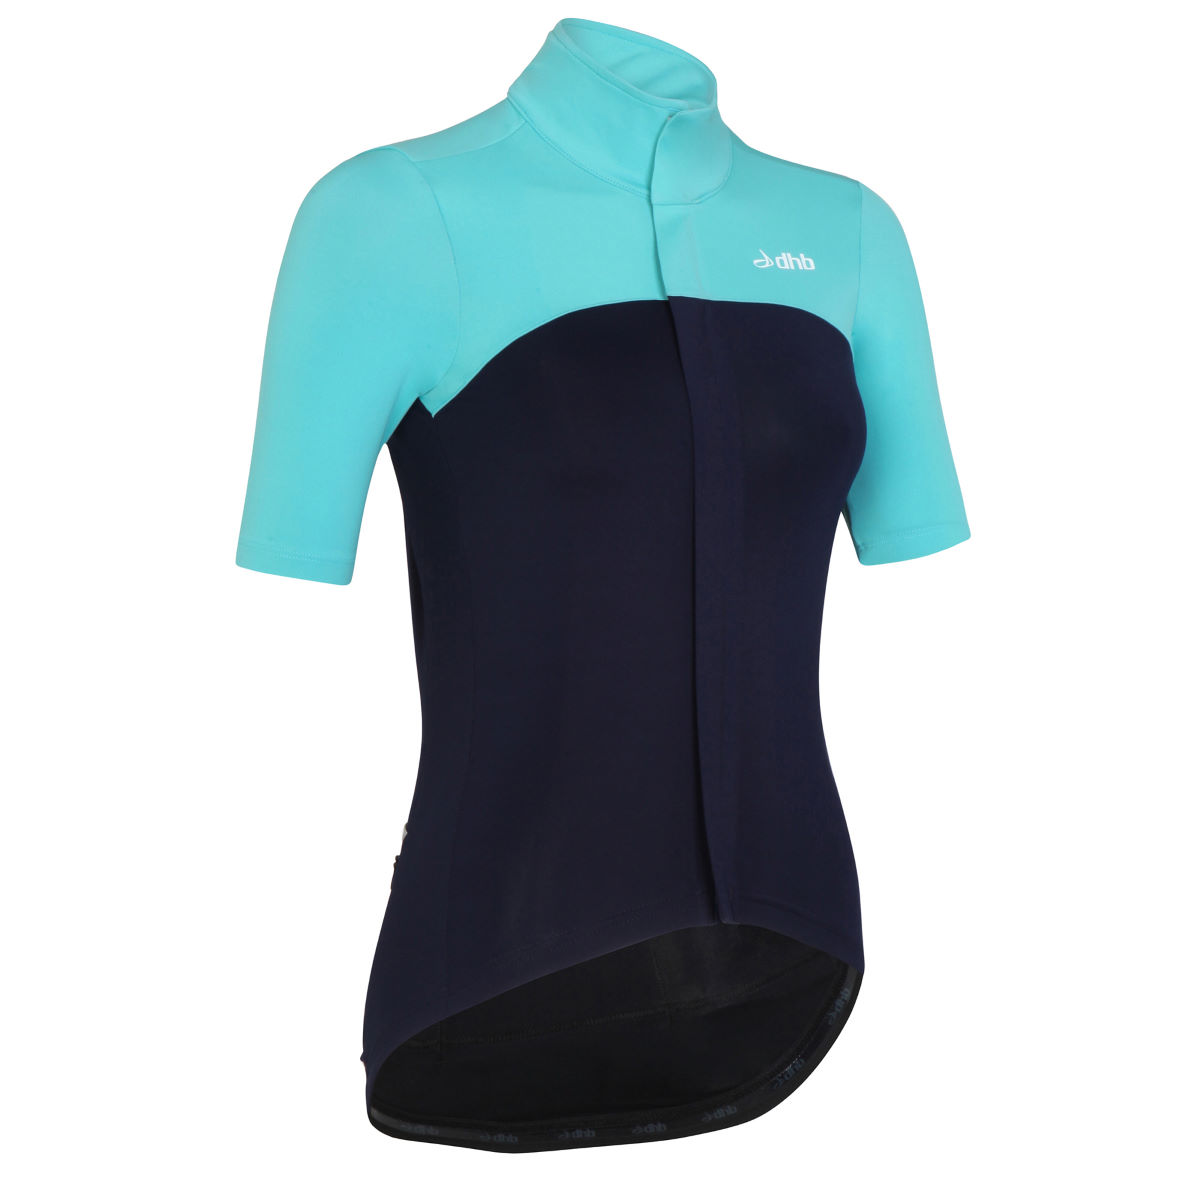 dhb Aeron Women's Rain Defence Short Sleeve Jersey